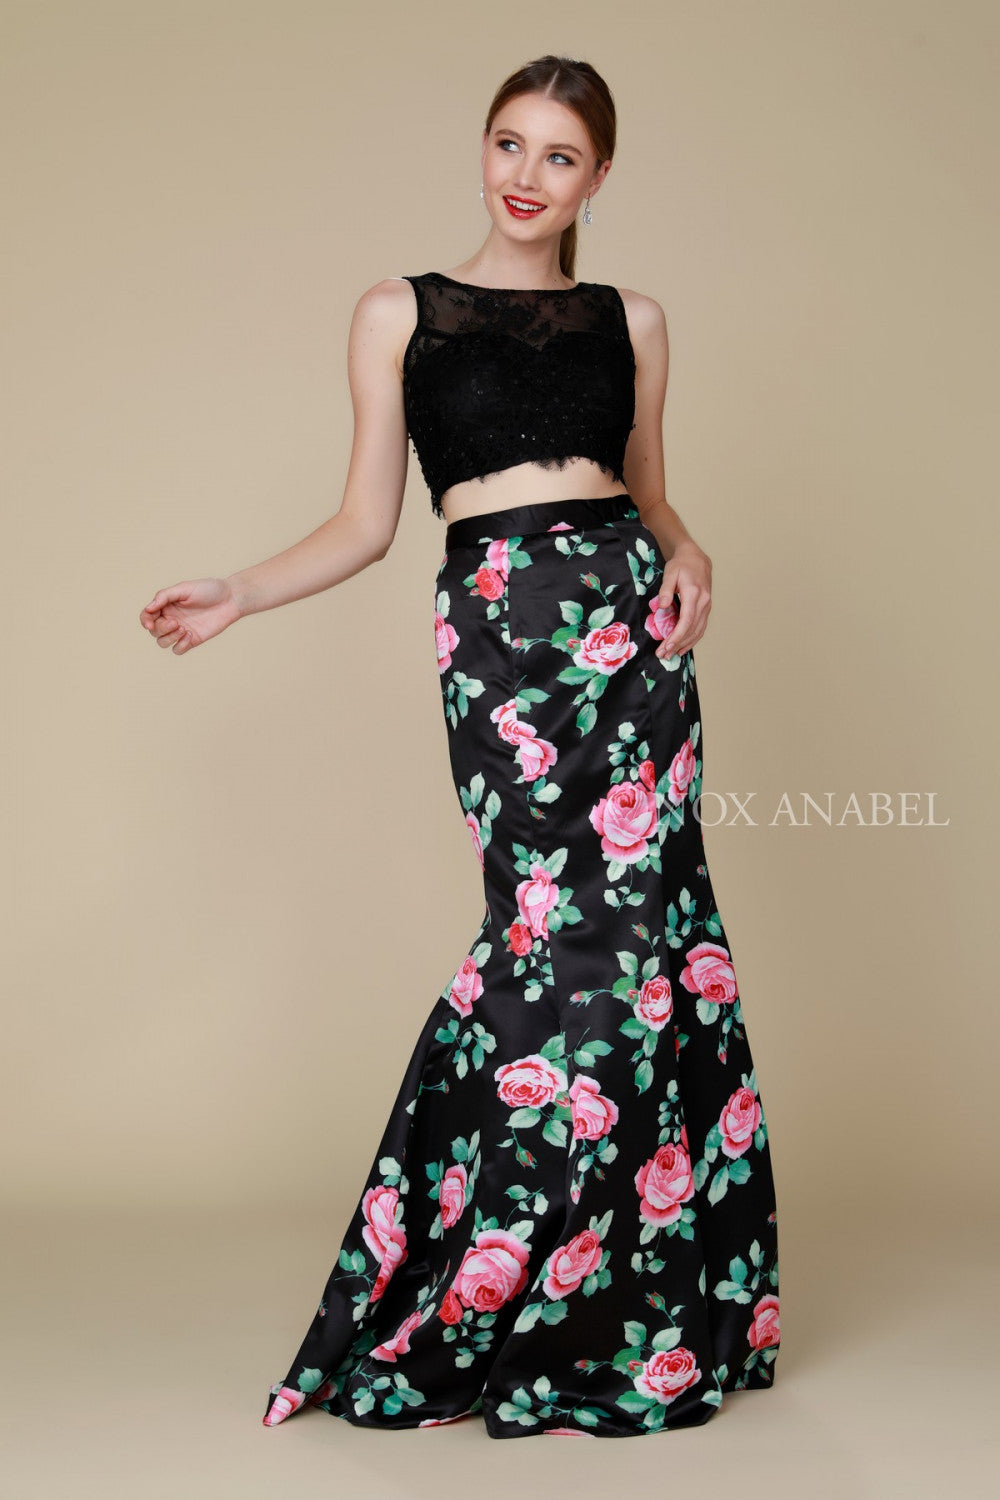 ee63c36b6b6a Two Piece Prom Dress Formal Evening Gown - The Dress Outlet Black Nox  Anabel ...